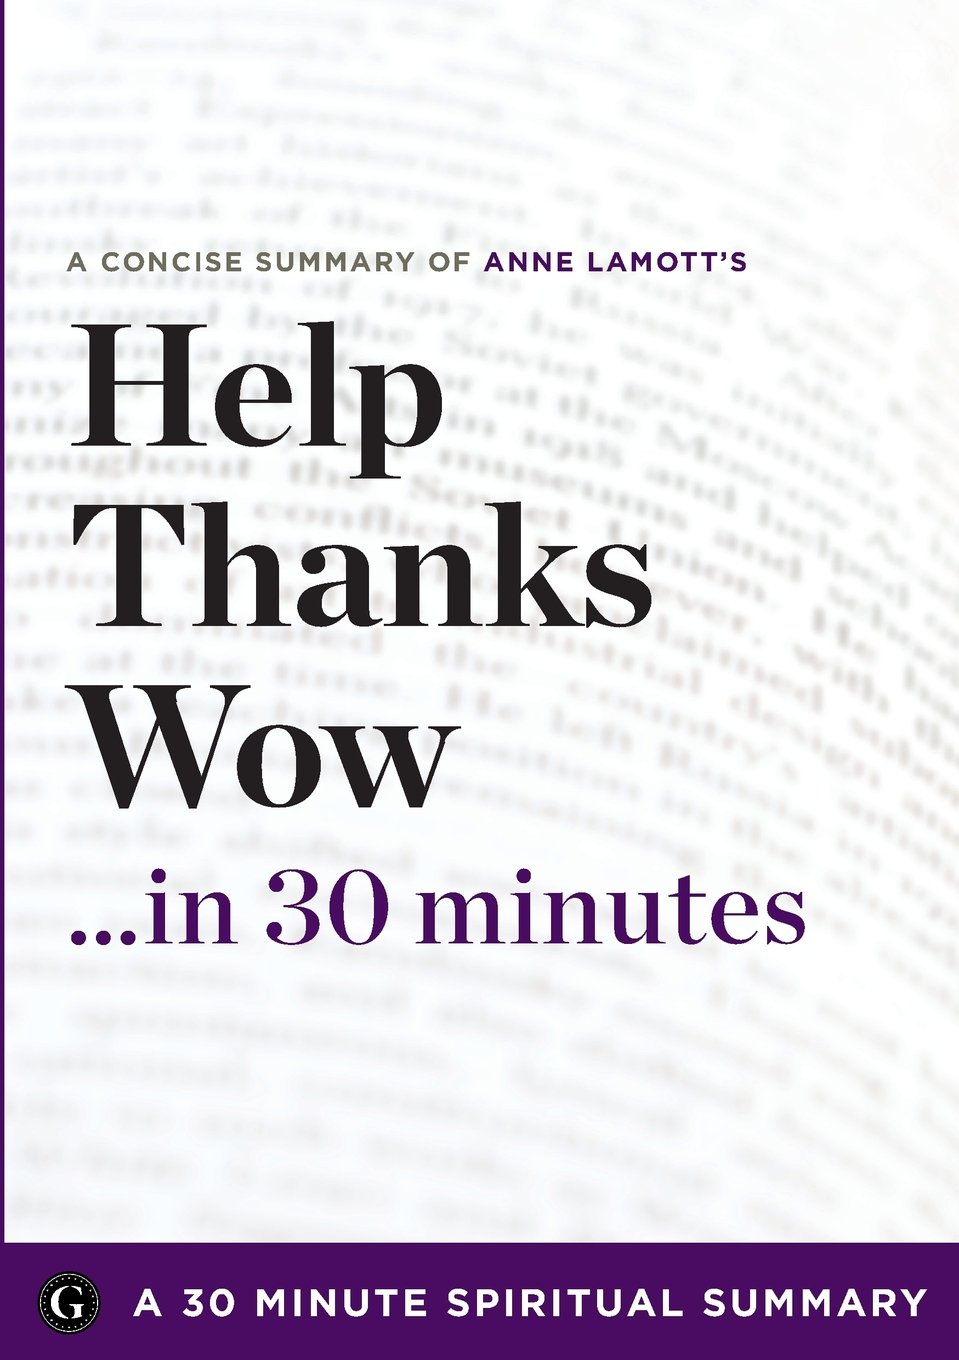 Help, Thanks, Wow: The Three Essential Prayers By Anne Lamott (30 Minute  Spiritual Series): 30 Minute Spiritual Series: 9781623150761: Amazon:  Books